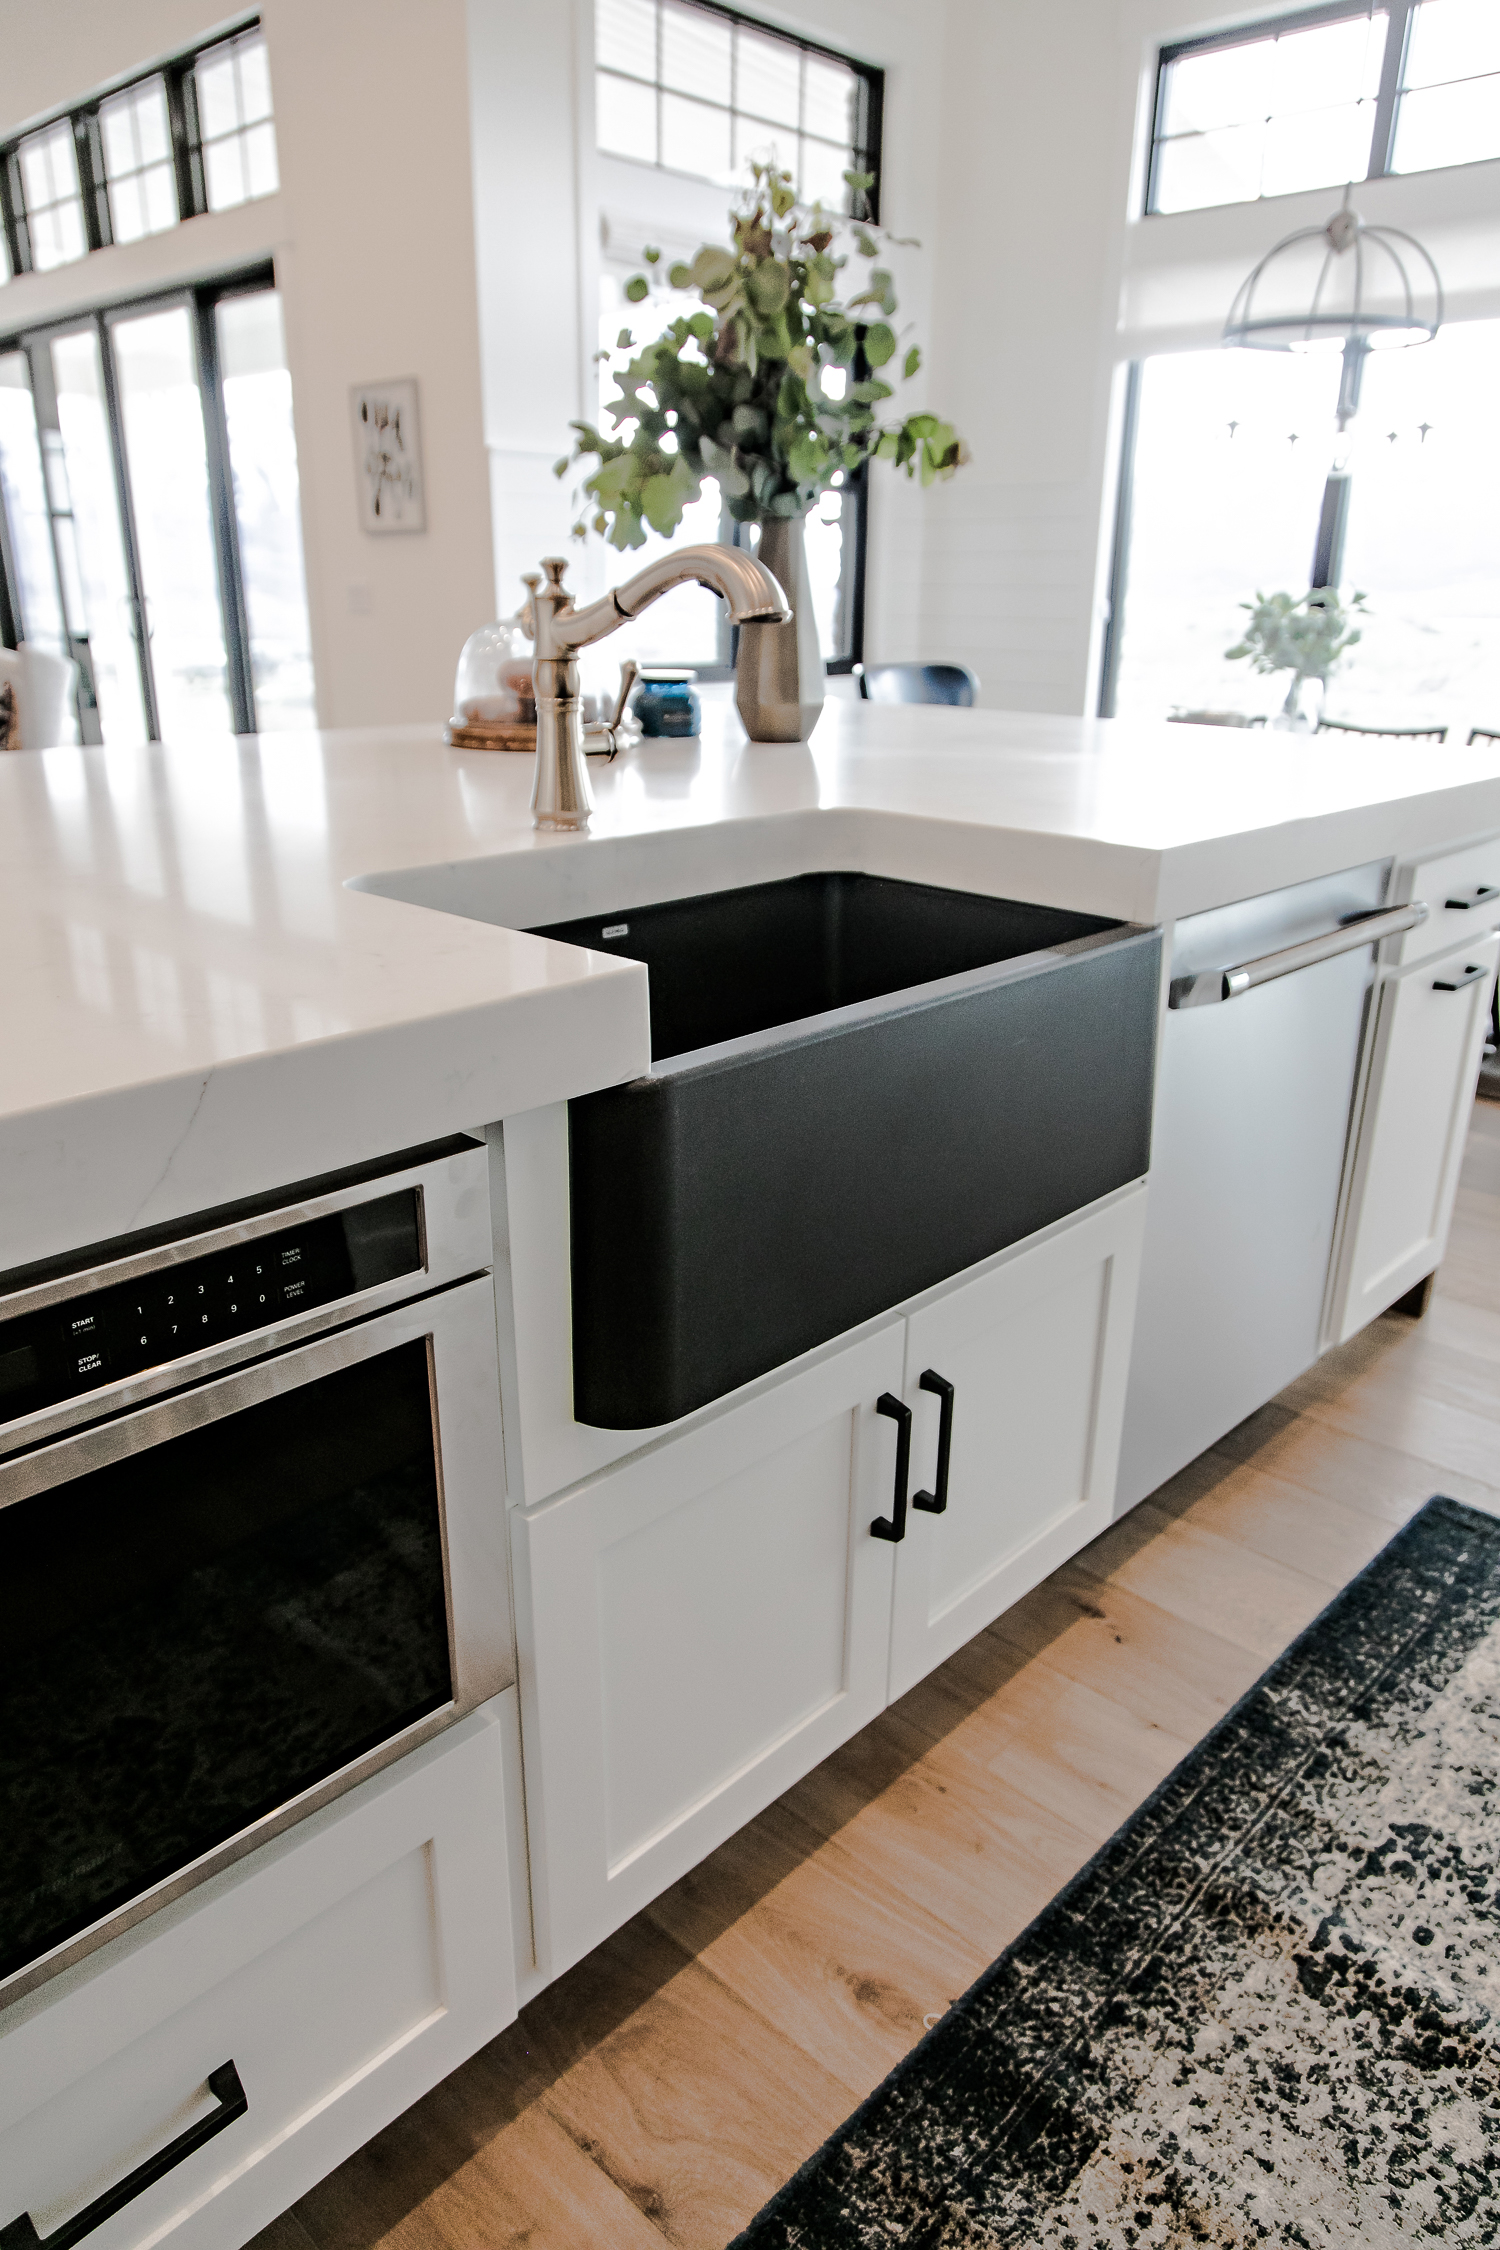 My Favorite Feature May Be The Black Silgranit, Farmhouse Sink From Blanco.  The Black Sink, With Brass Faucet, Set Agains The White Countertops And ...